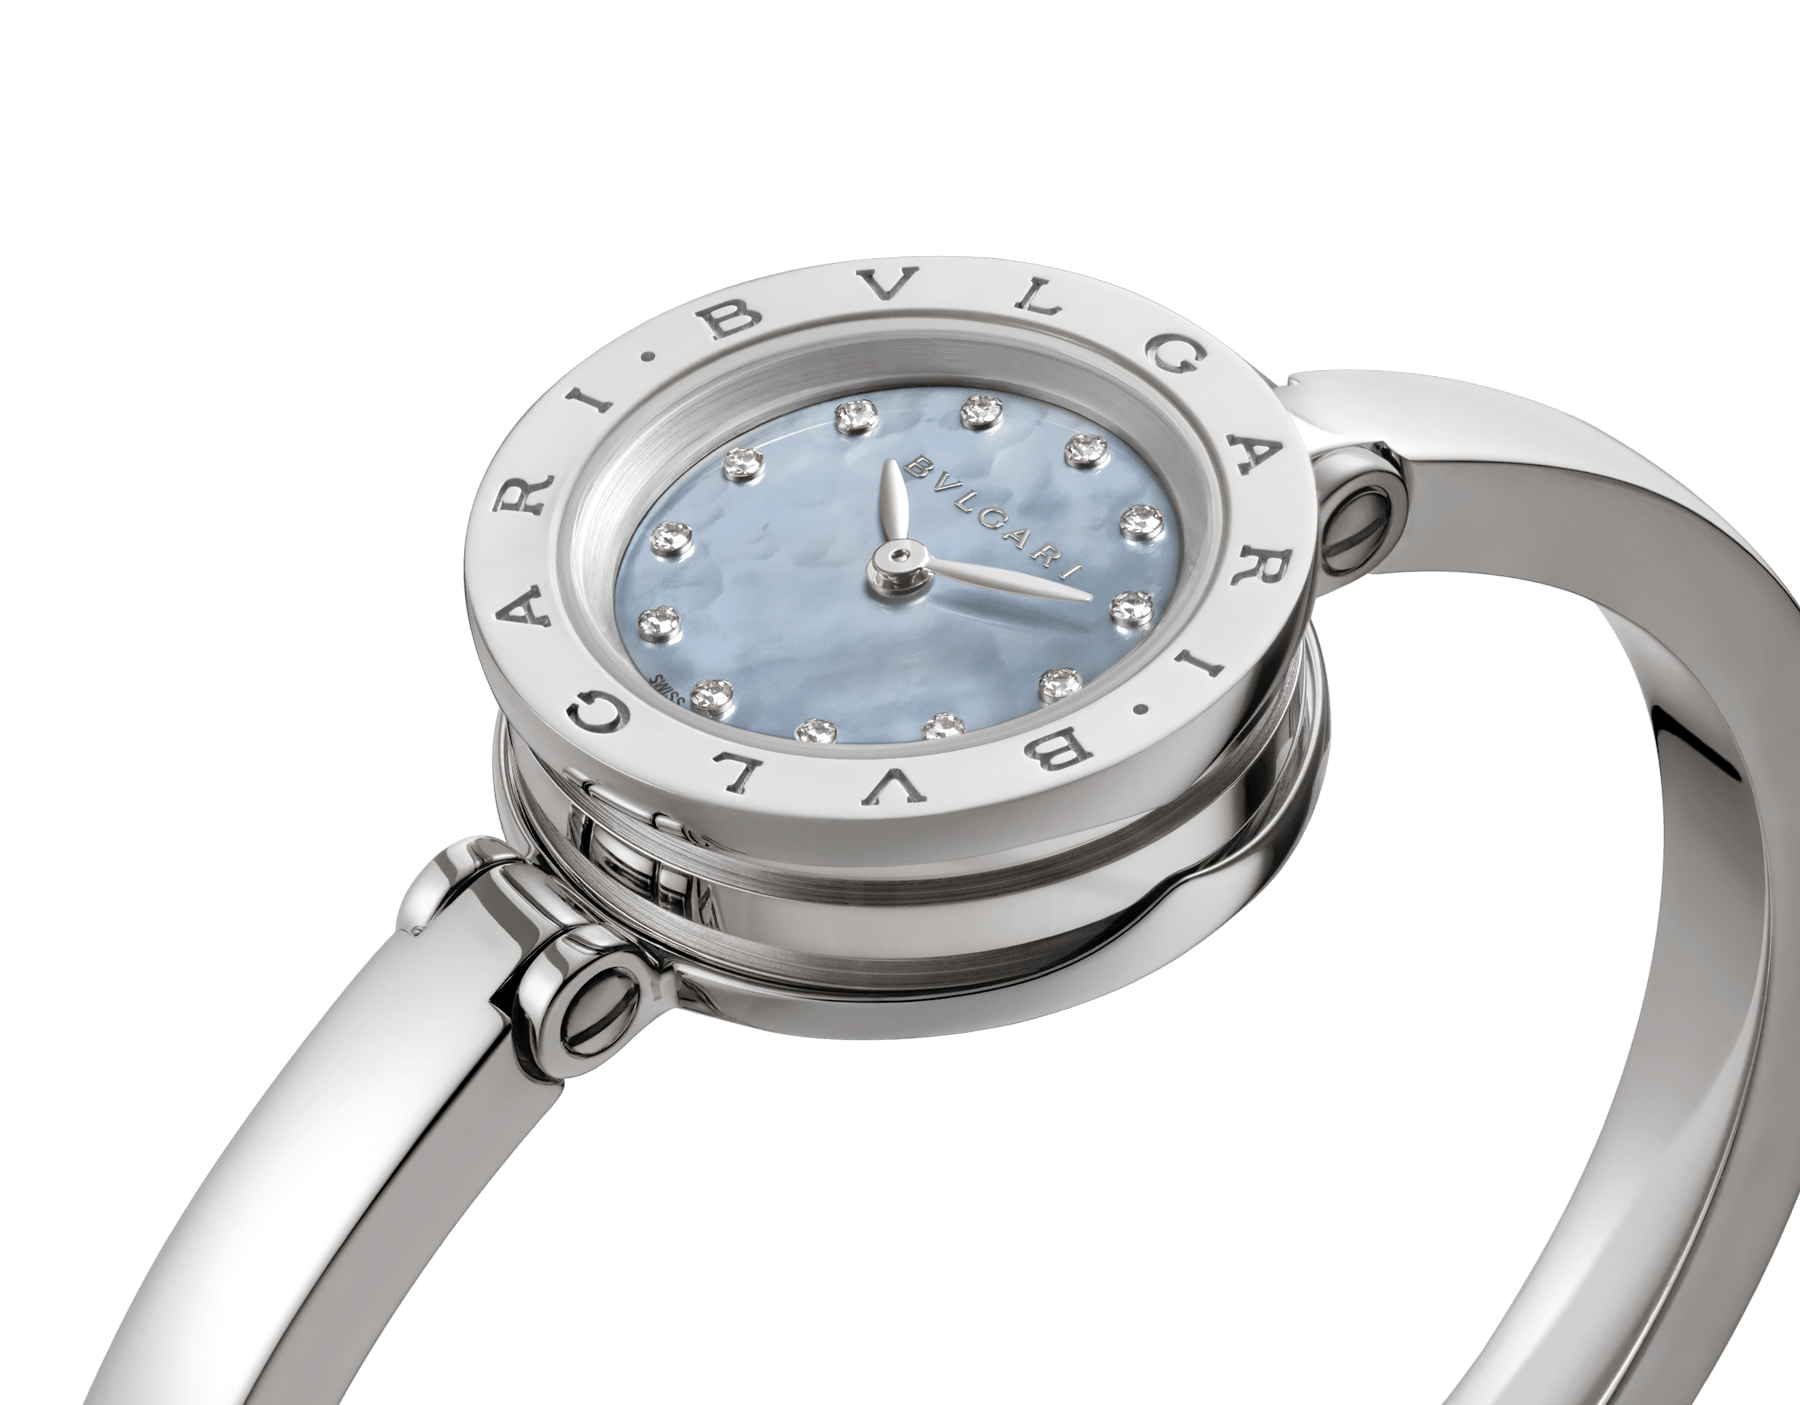 B.zero1 watch with stainless steel case, blue mother-of-pearl dial set with diamond indexes and stainless steel bangle. Medium size. B01watch-white-white-dial2 image 6